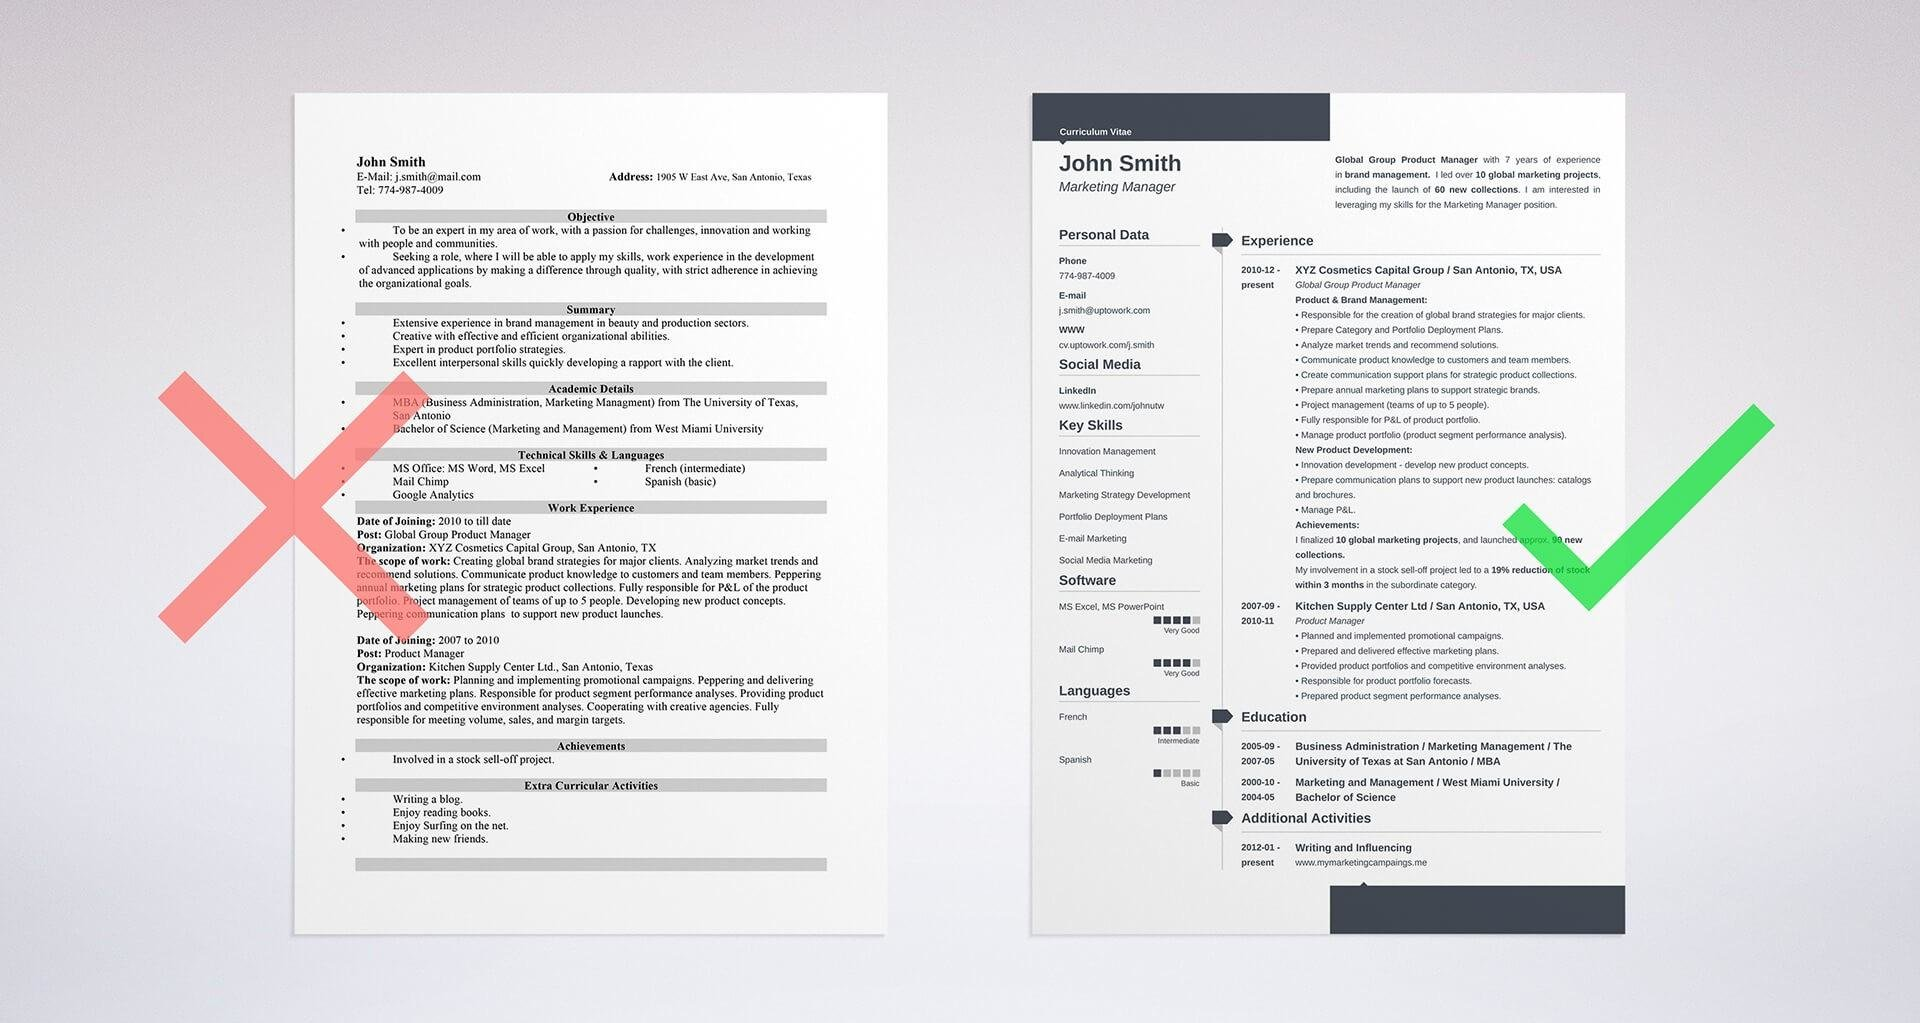 Wonderful +20 Resume Objective Examples   Use Them On Your Resume (Tips)  Resume Objective Section